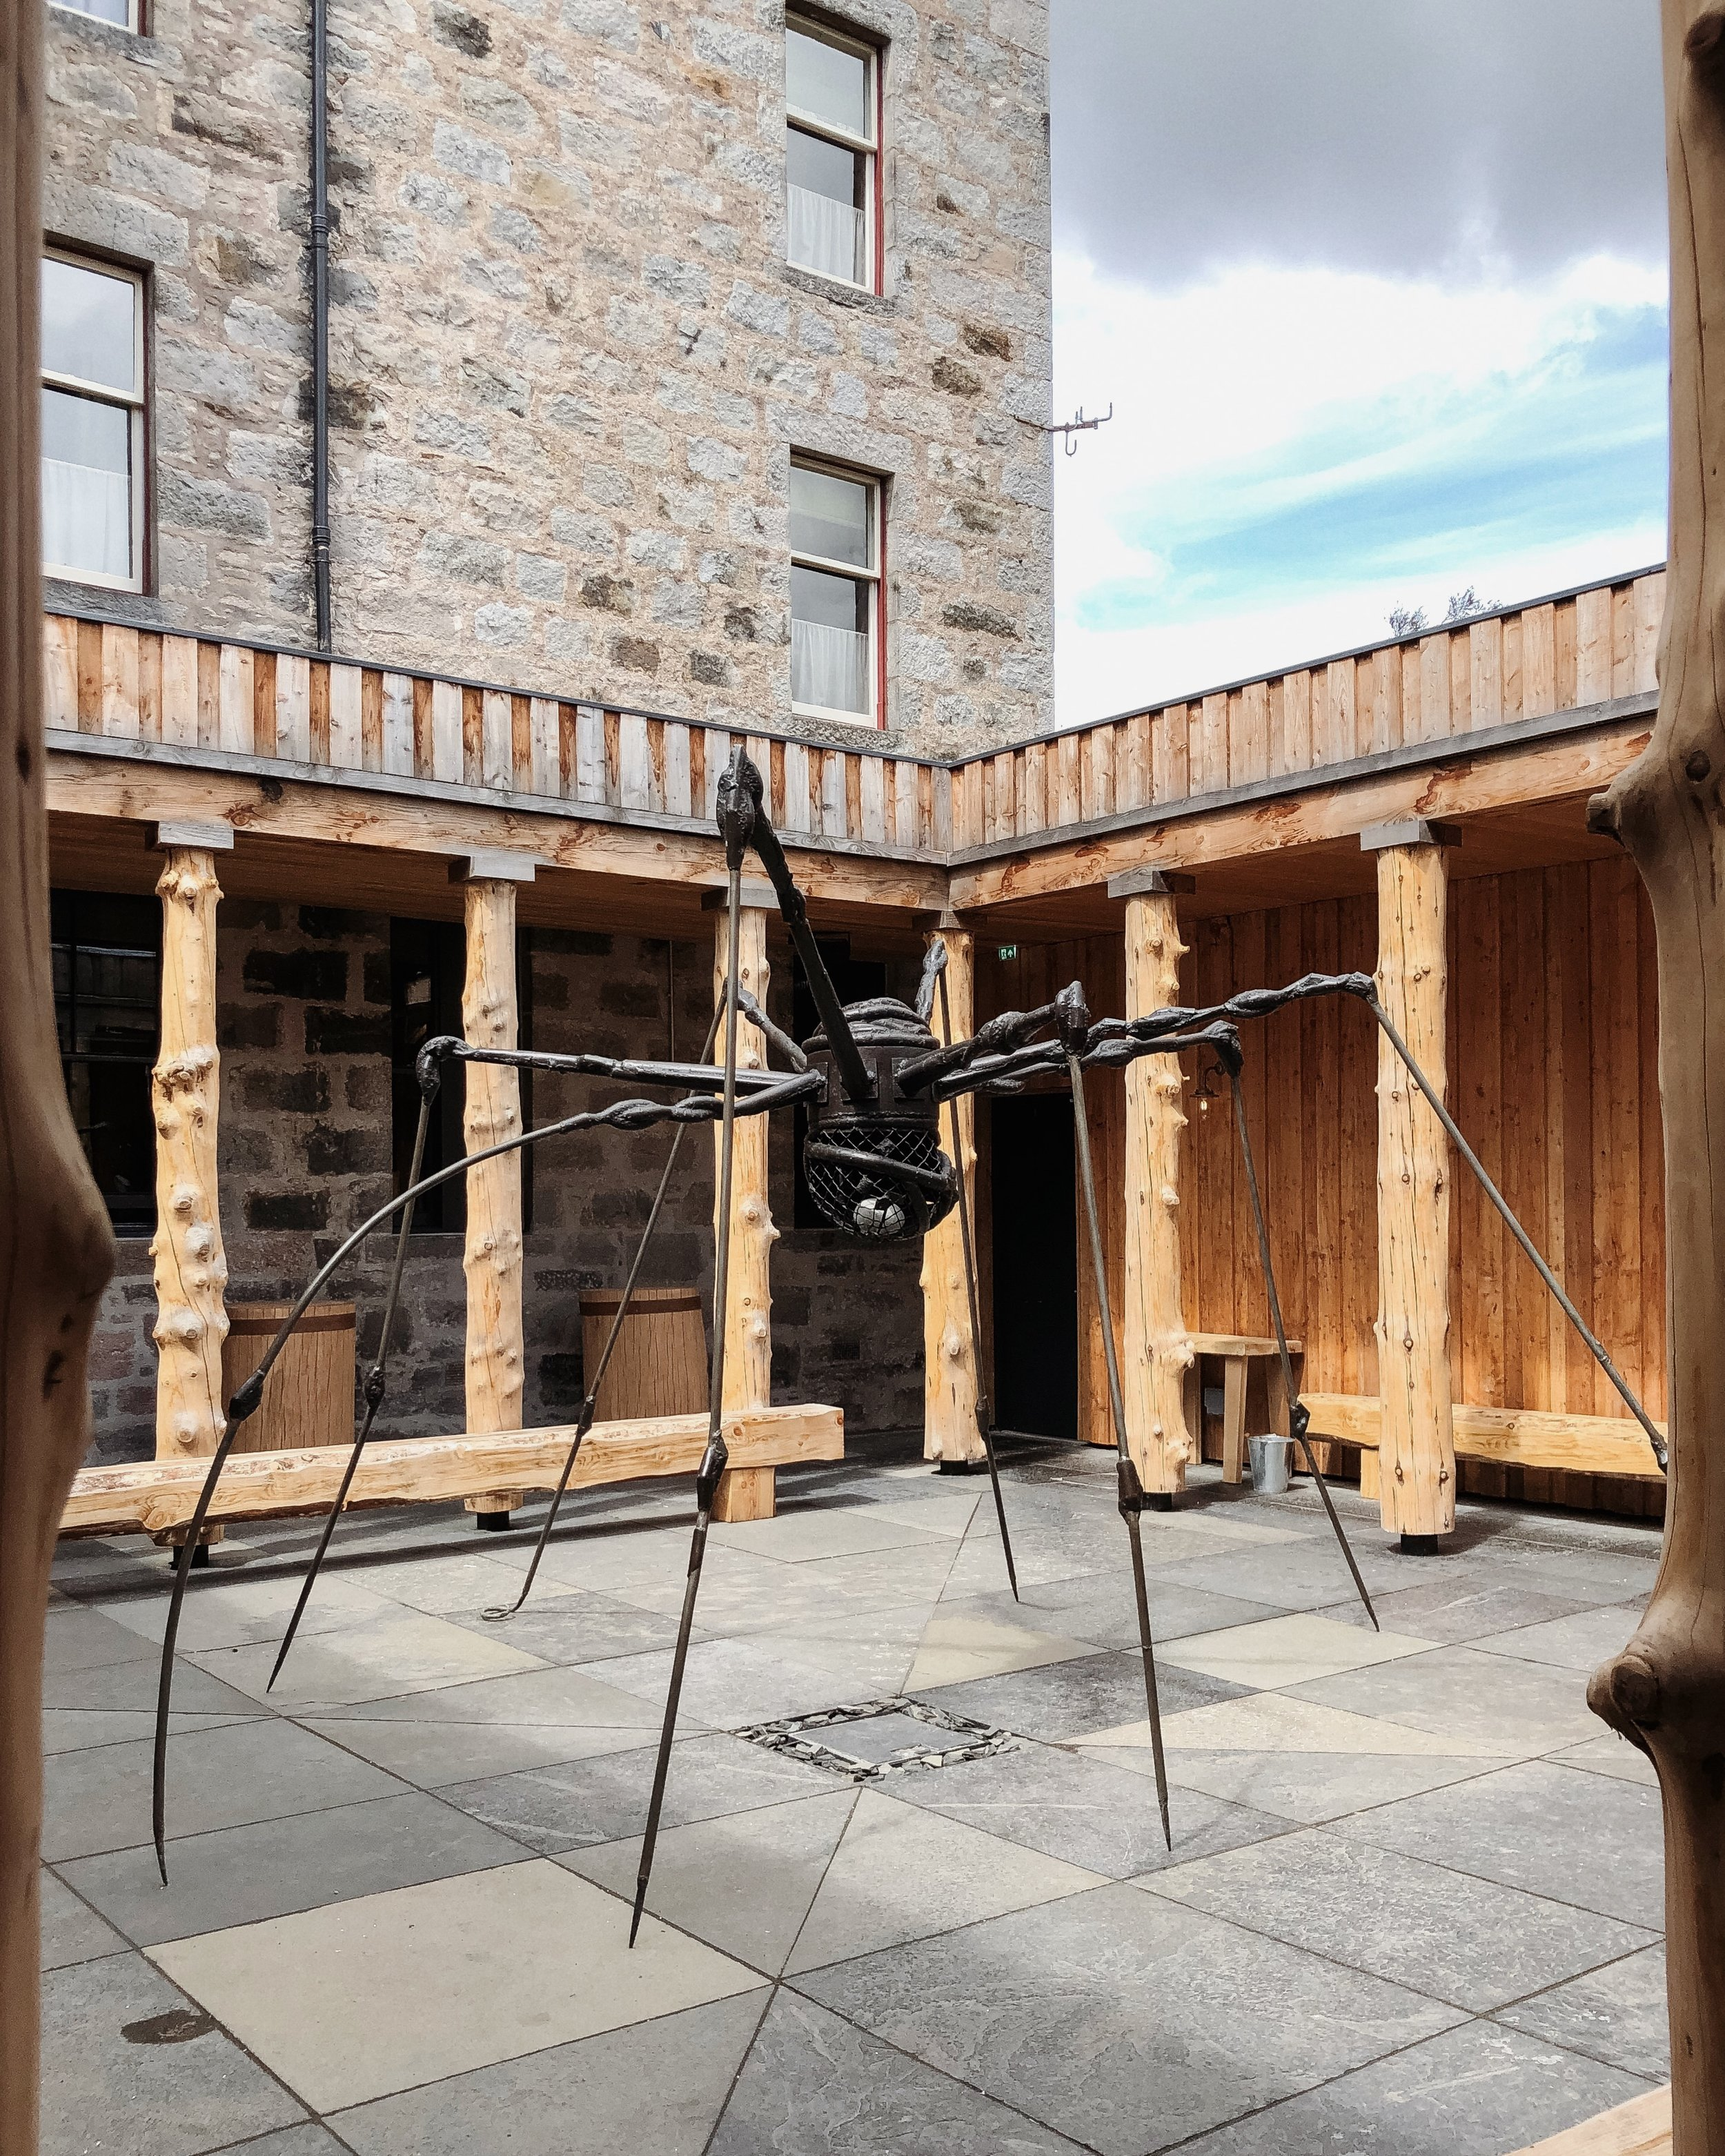 Louise Bourgeois spider in the couryard